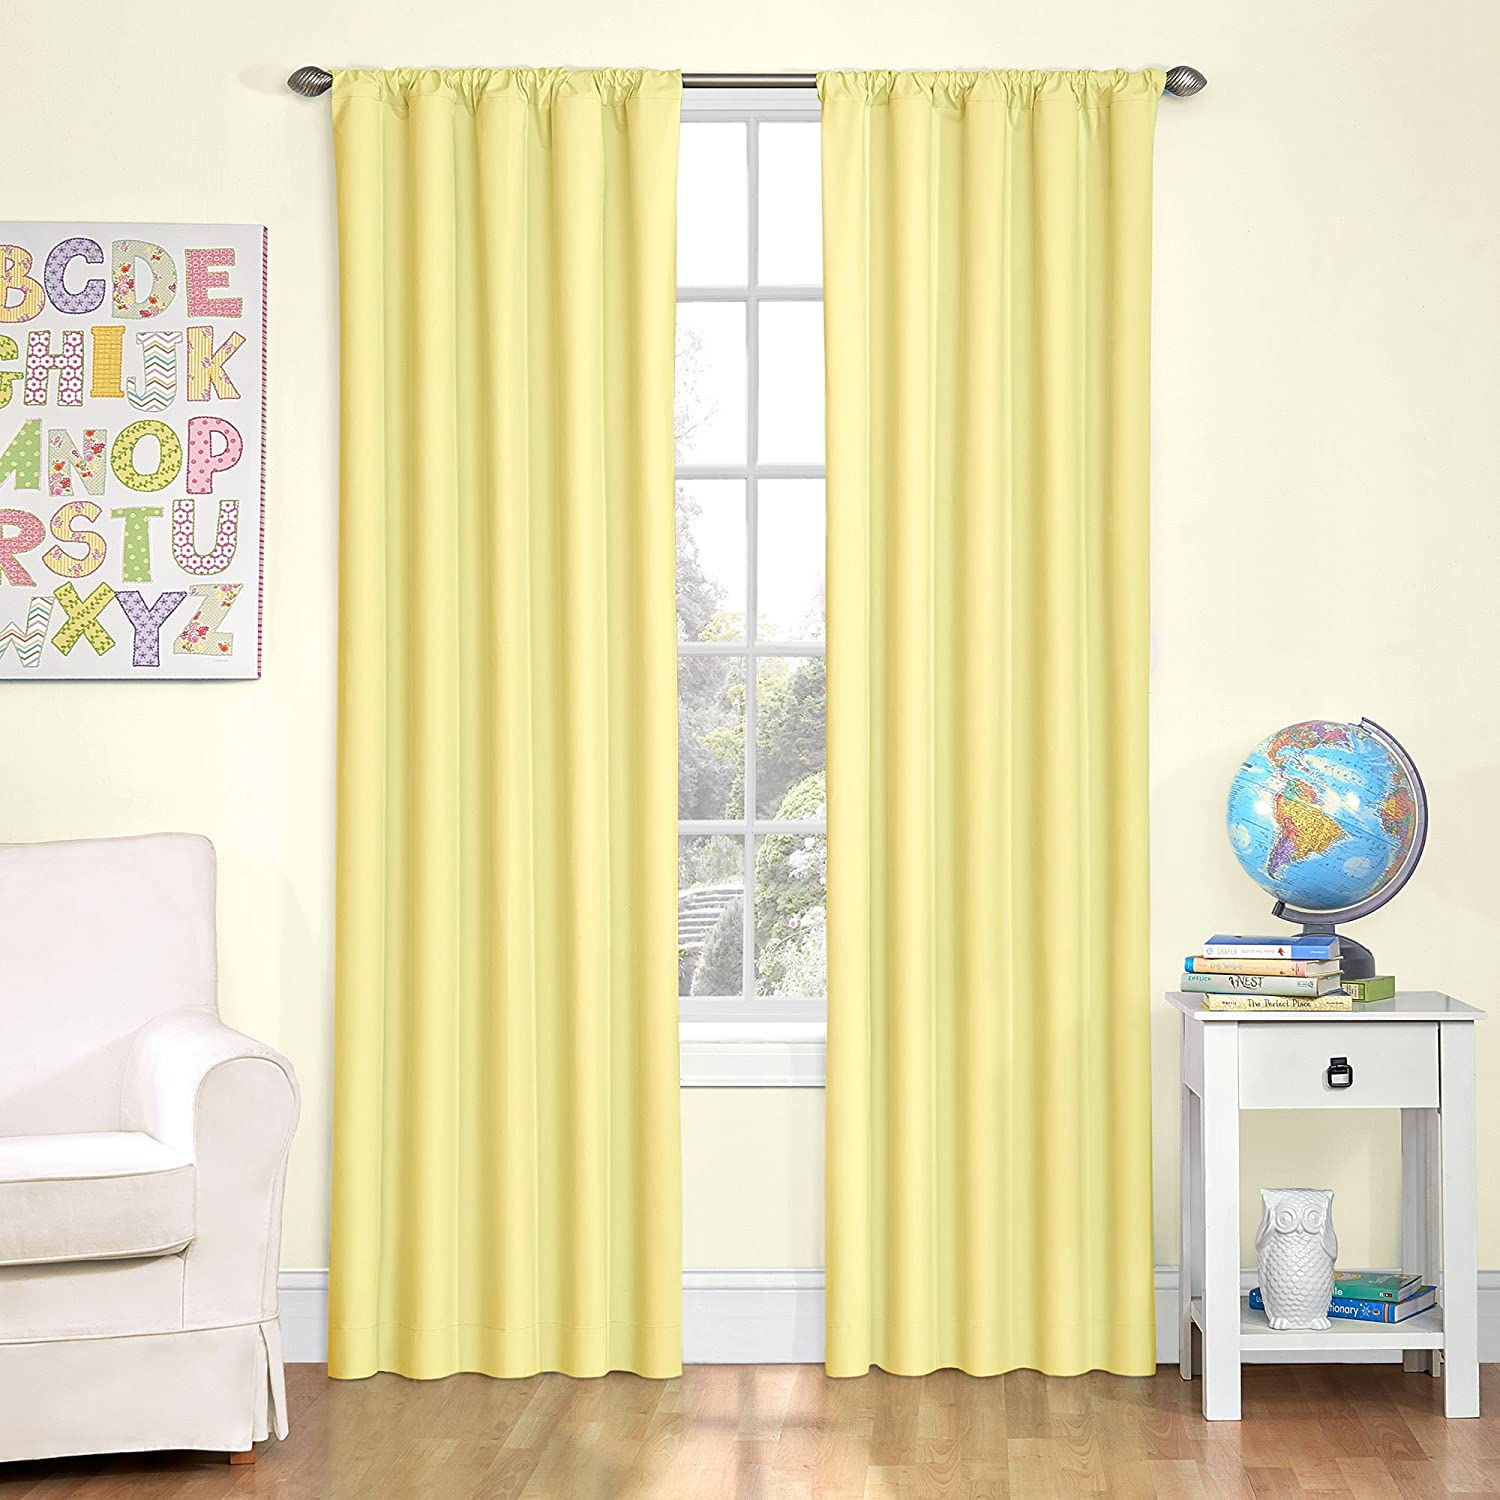 Amazon.com: Eclipse Kids Microfiber Room Darkening Window Curtain Panel, 42  By 63 Inch, Yellow: Home U0026 Kitchen Part 65